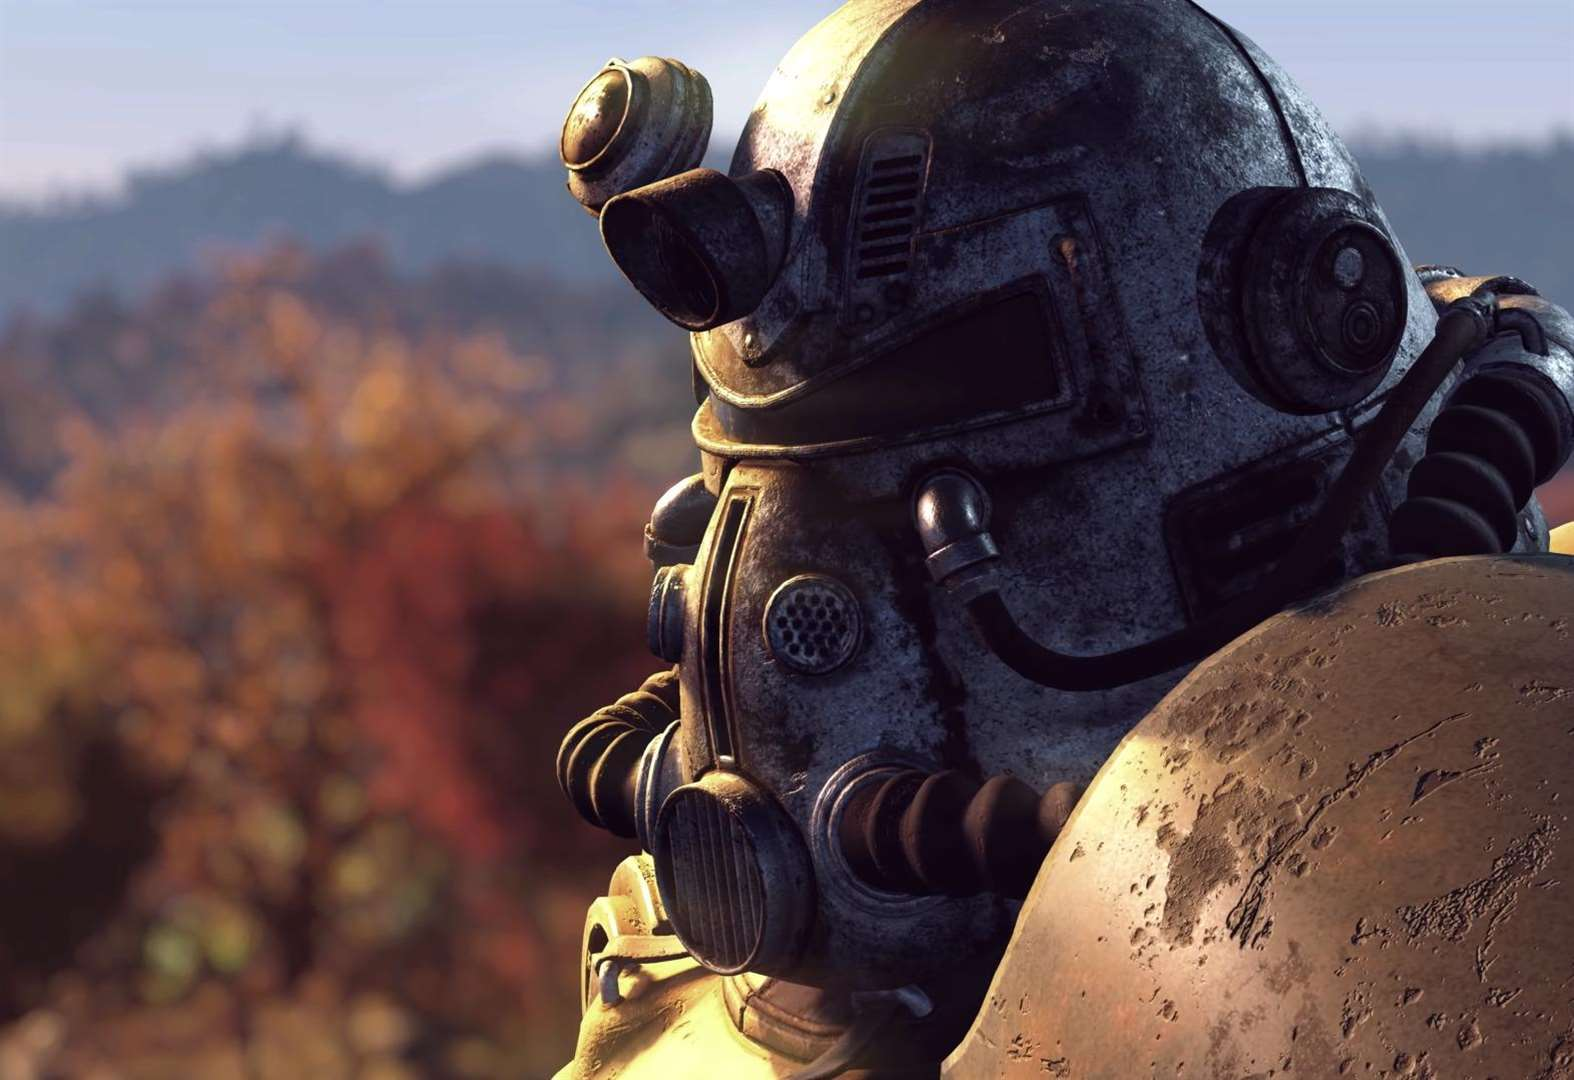 VIDEO GAME REVIEW: FALLOUT 76